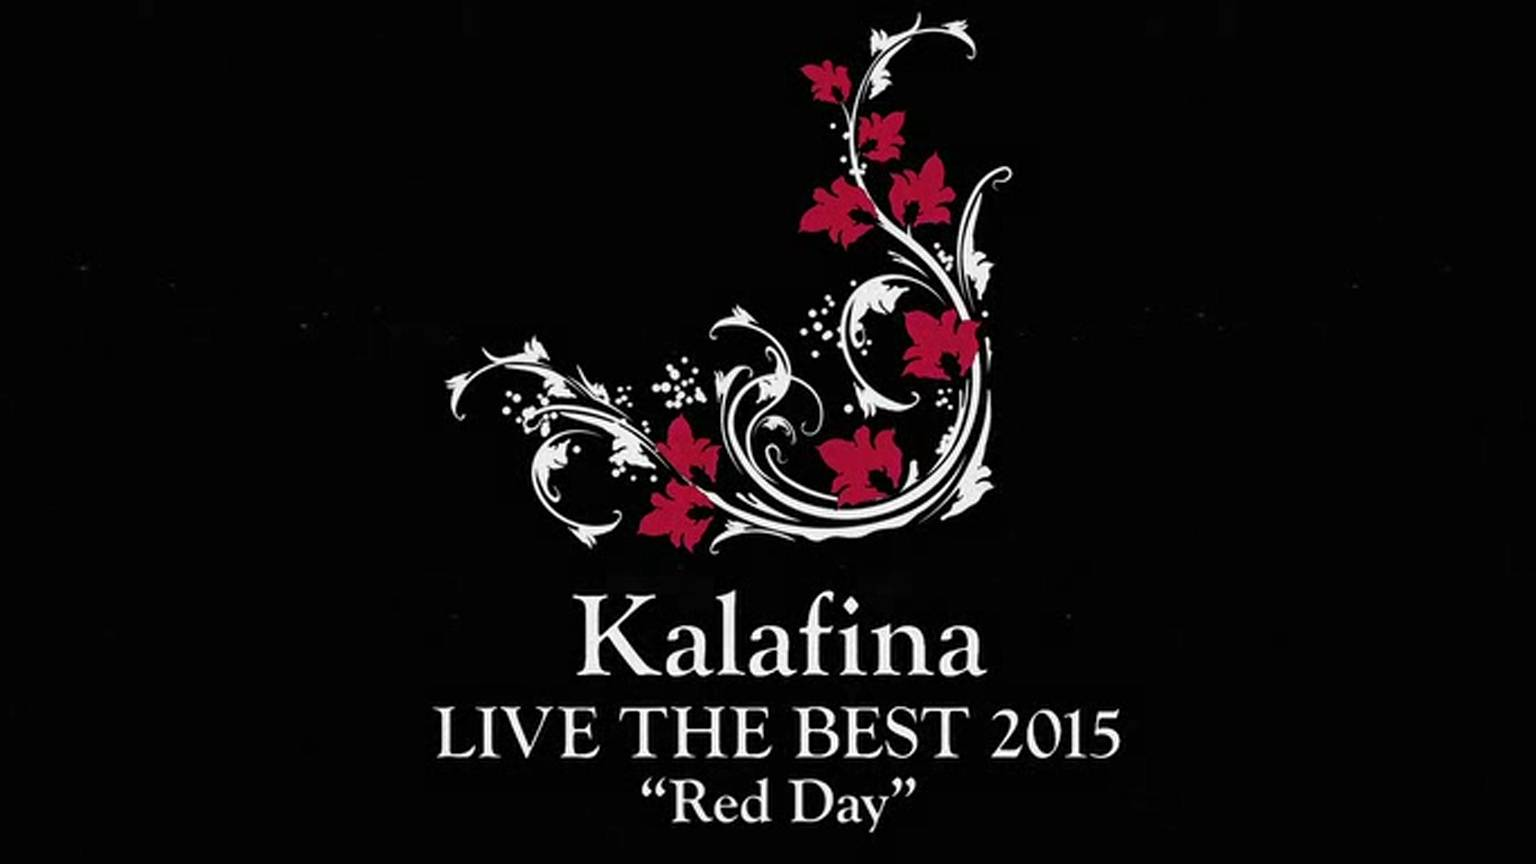 """Kalafina LIVE THE BEST 2015 """"Red Day"""""""